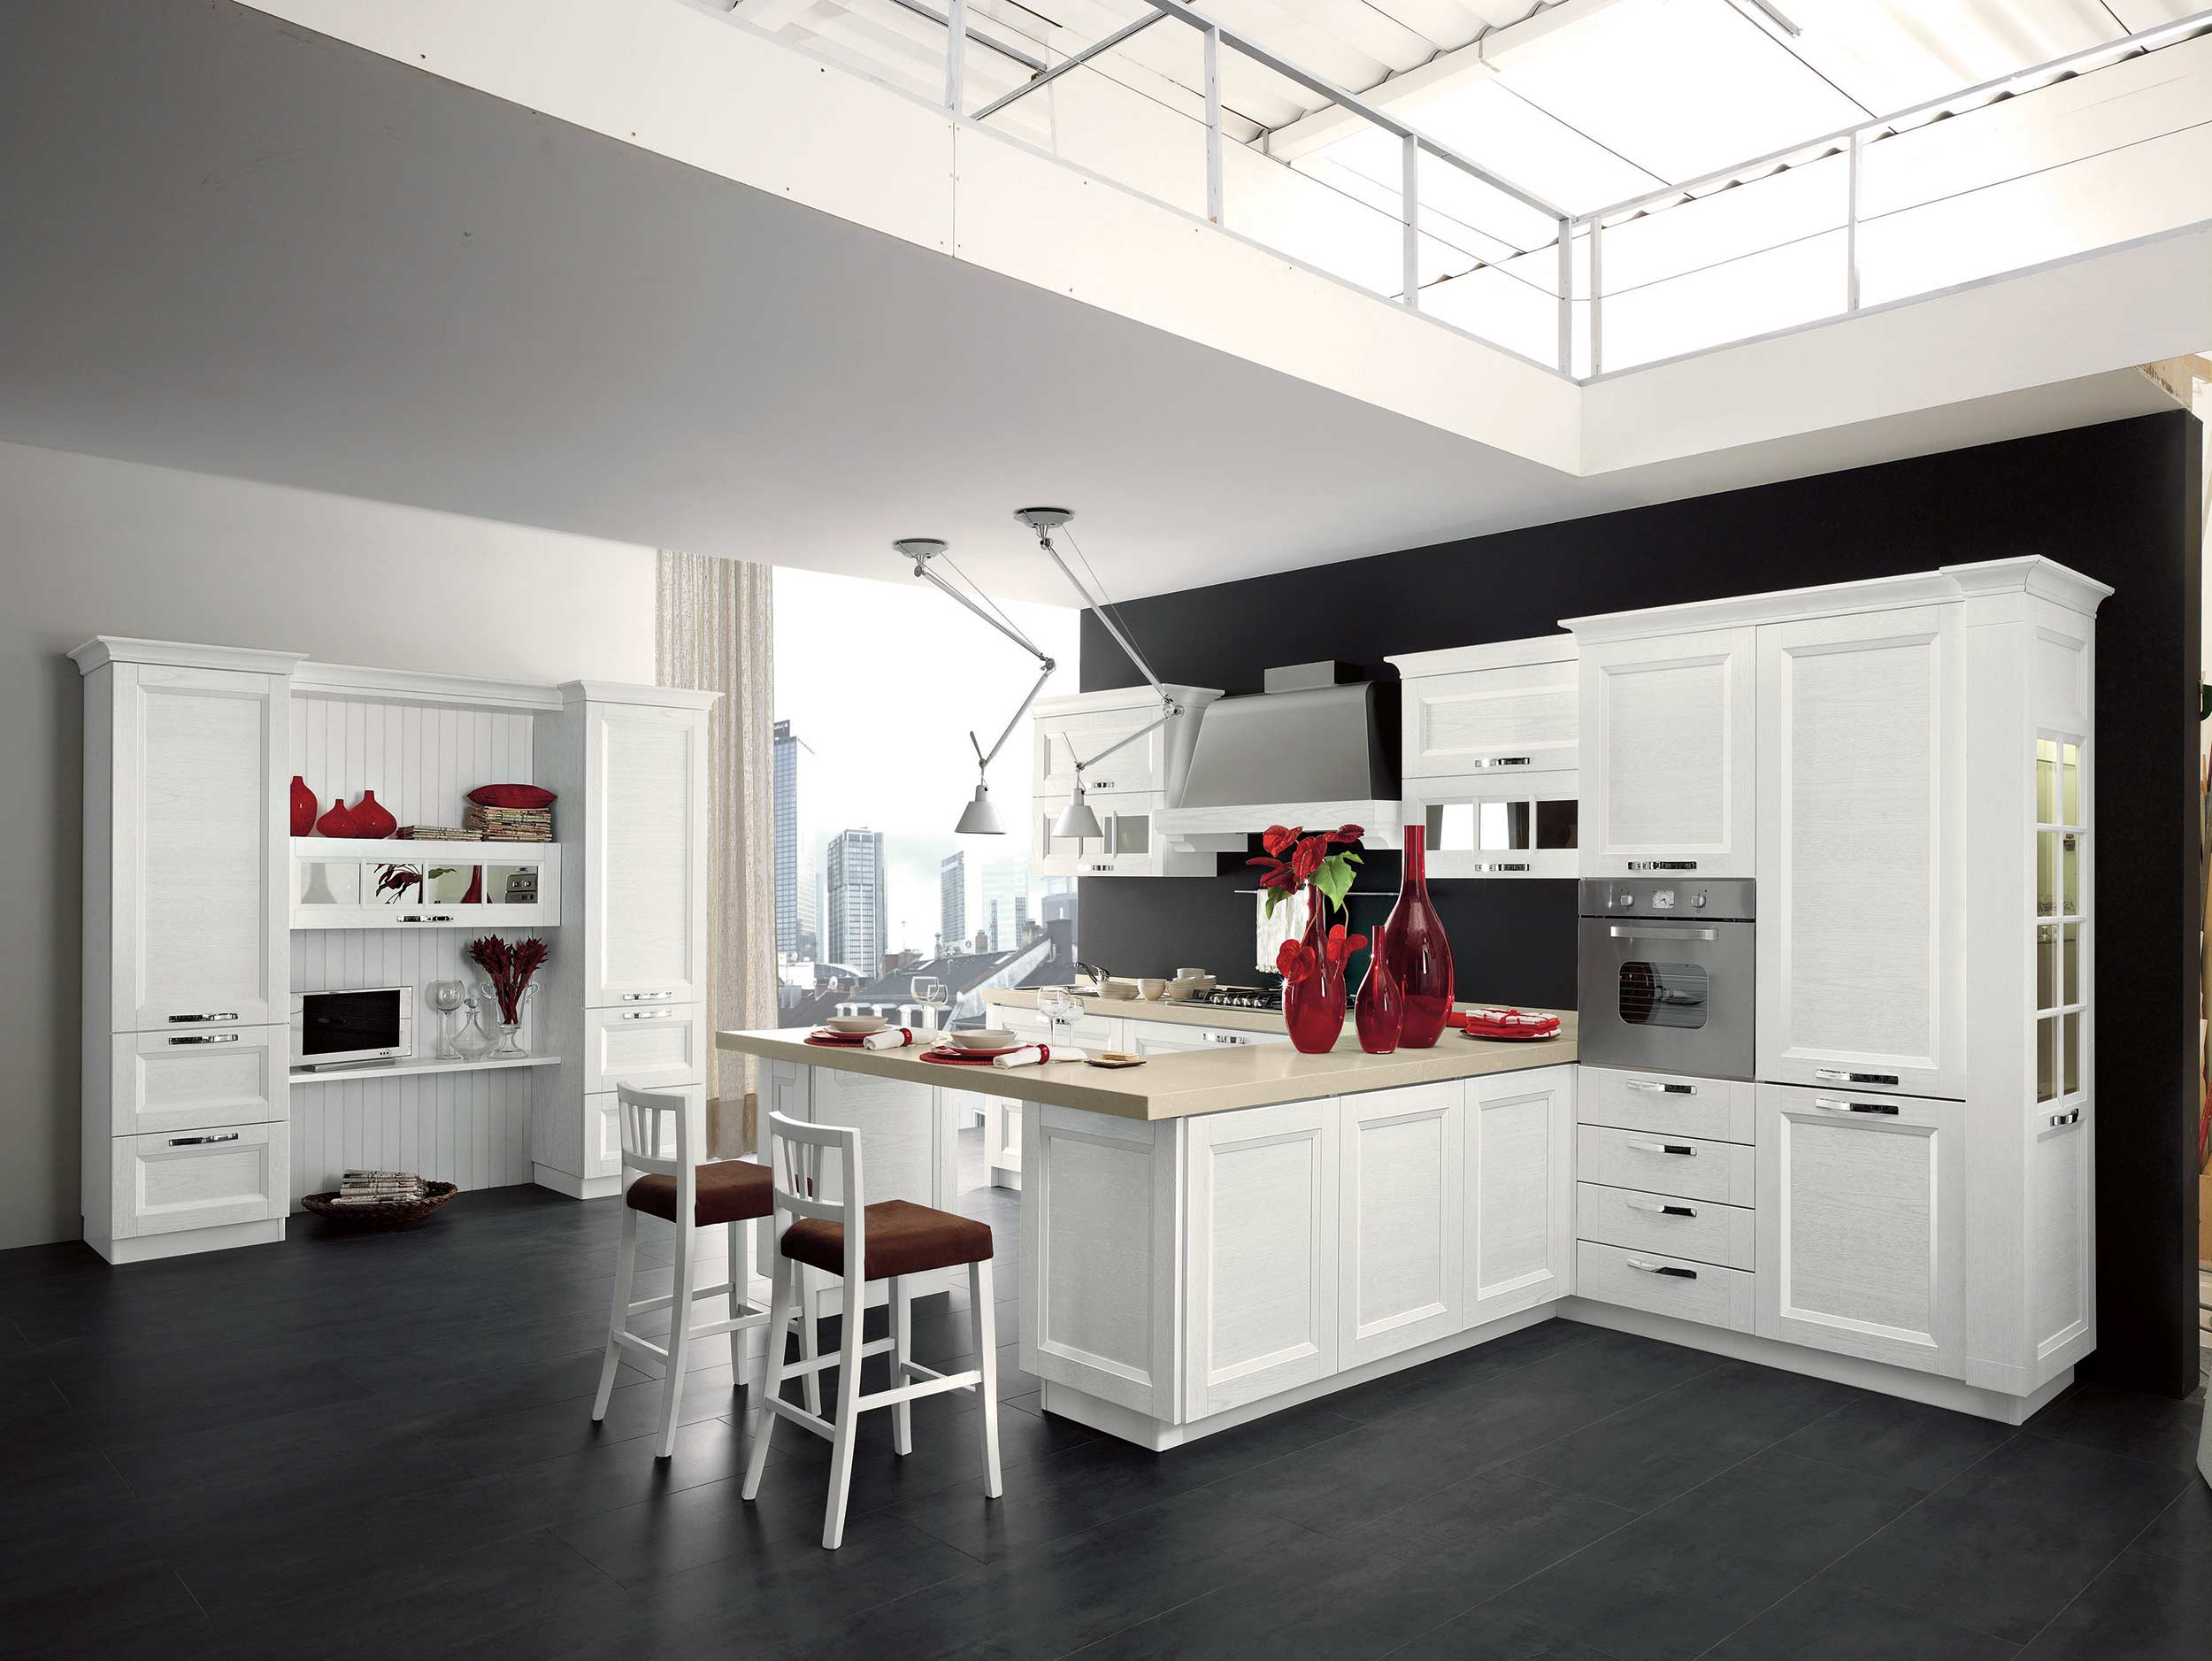 Emejing Cucine Stosa Beverly Pictures - harrop.us - harrop.us